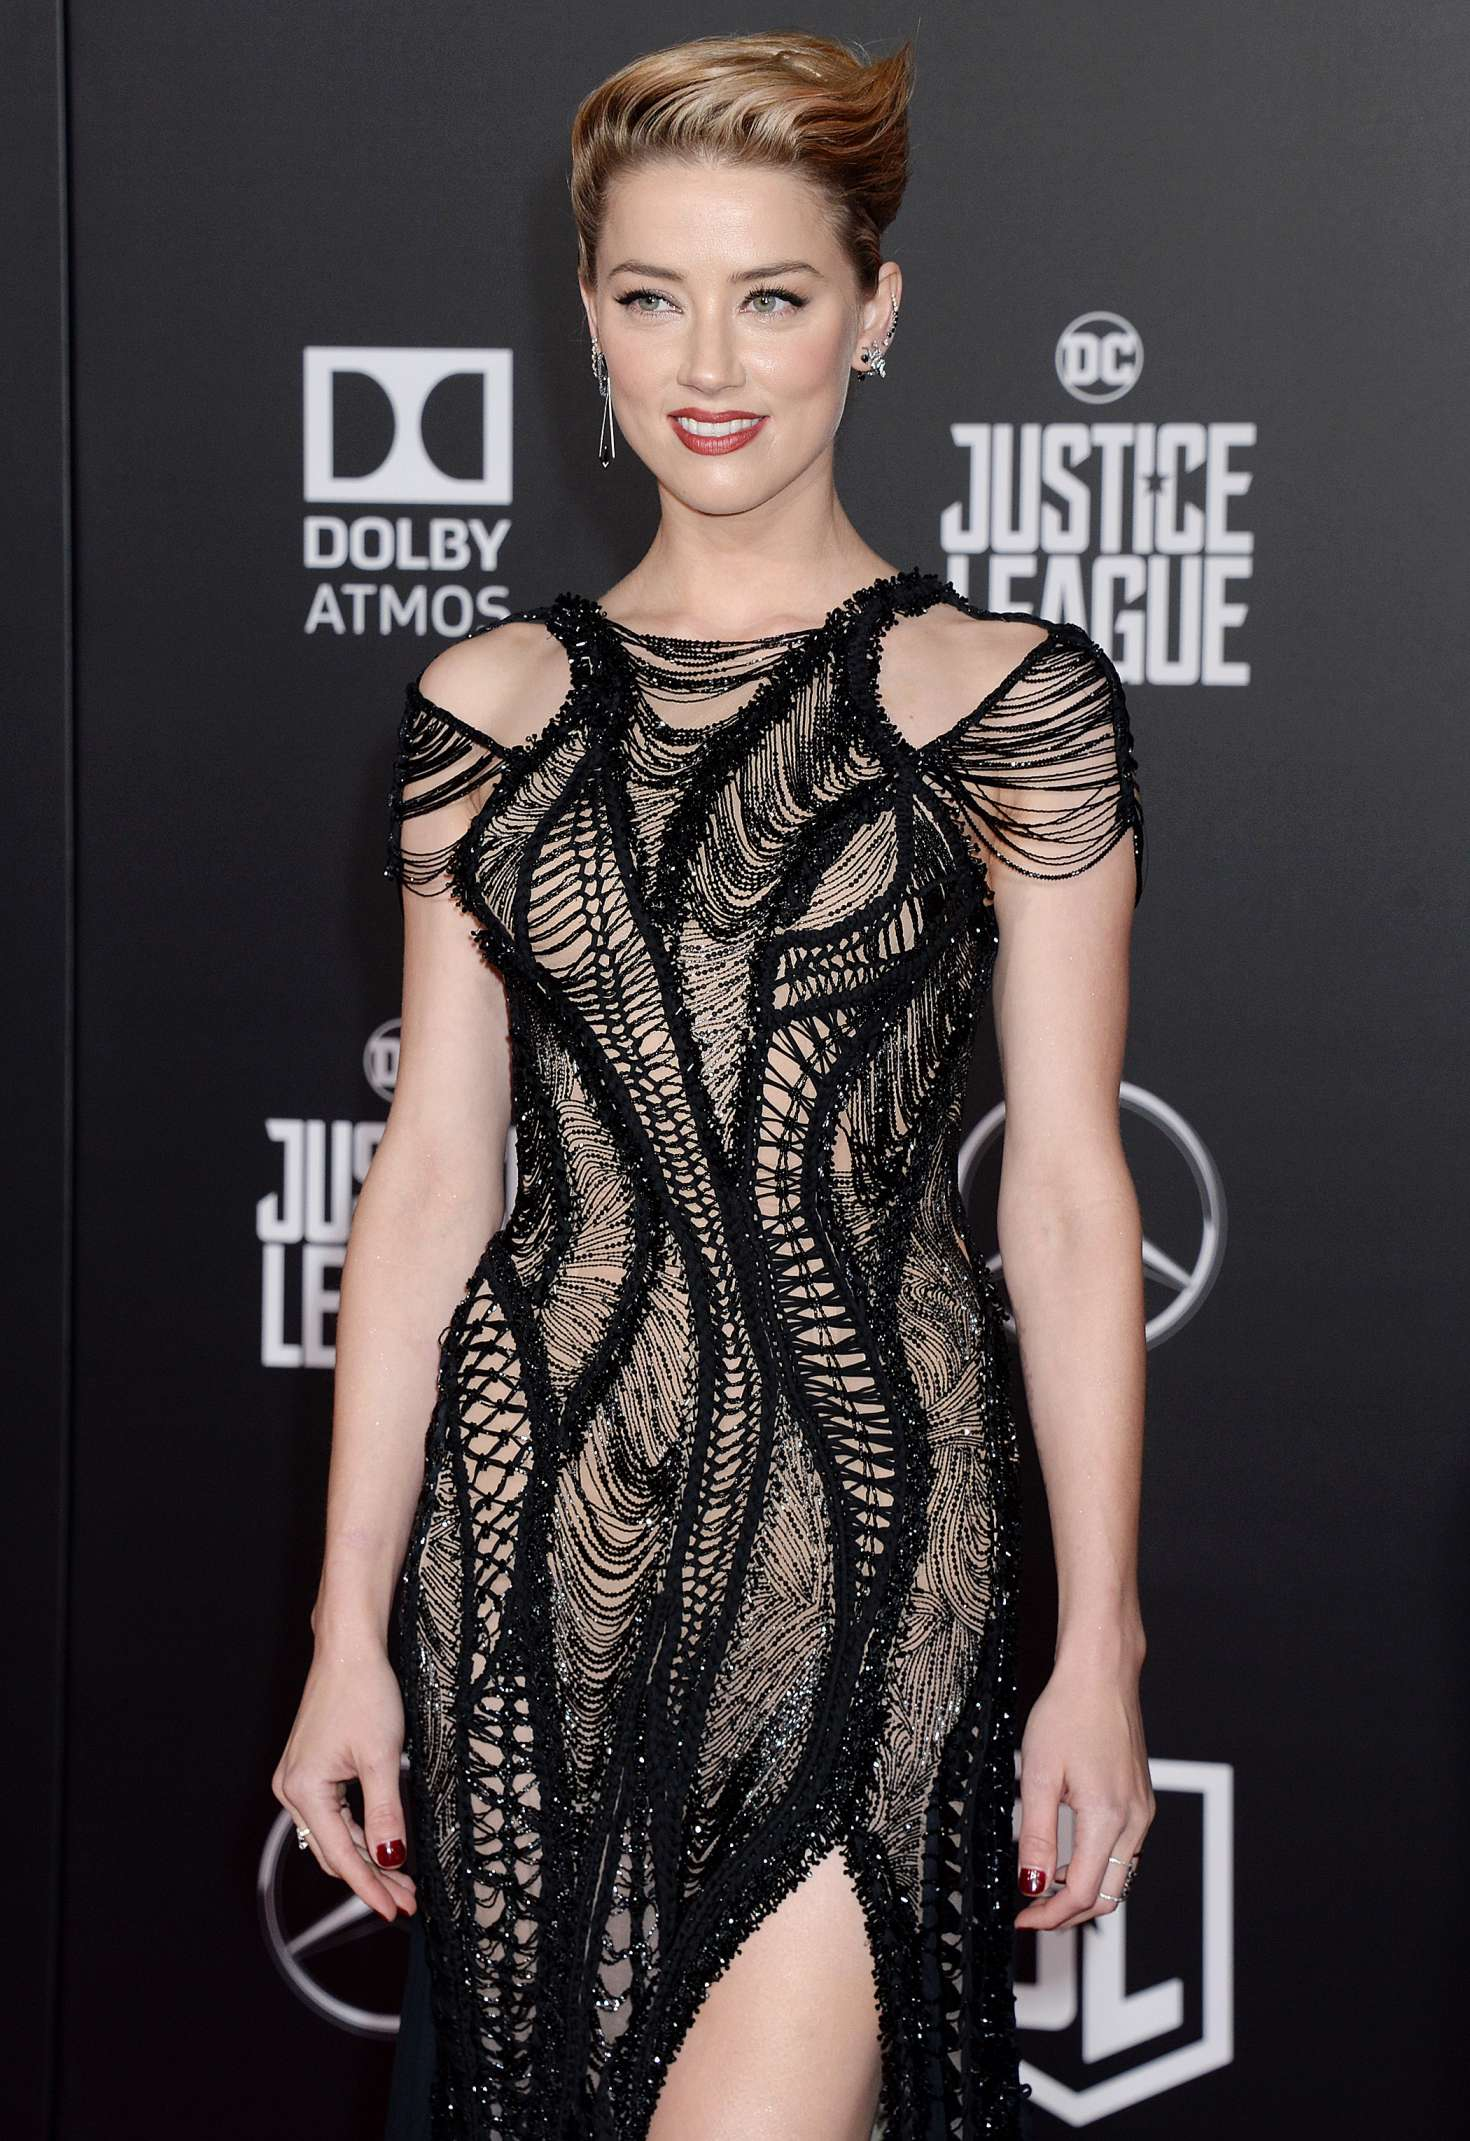 Amber Heard - 'Justice League' Premiere in LA